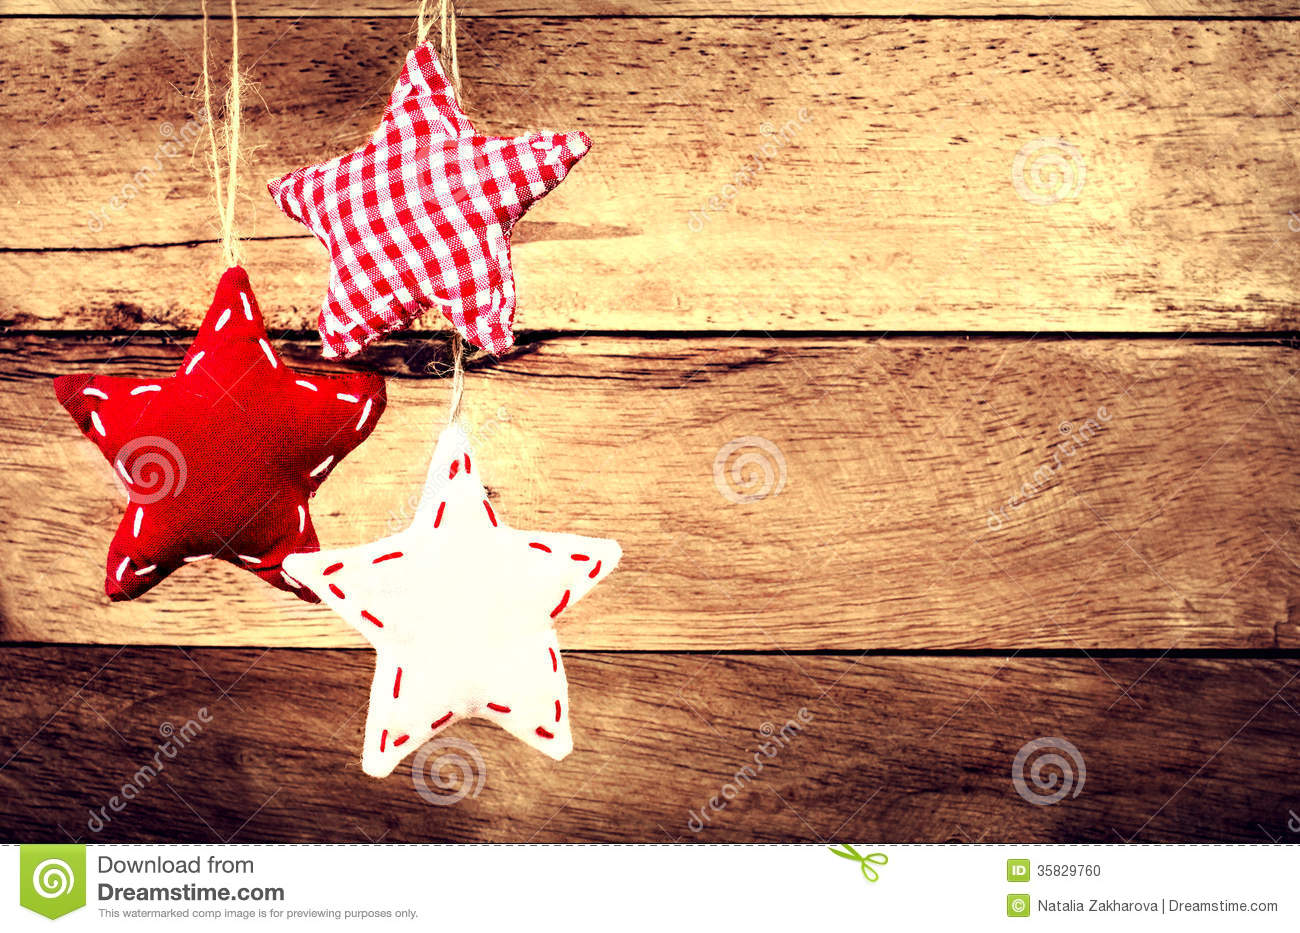 Christmas decoration hanging over rustic wooden background